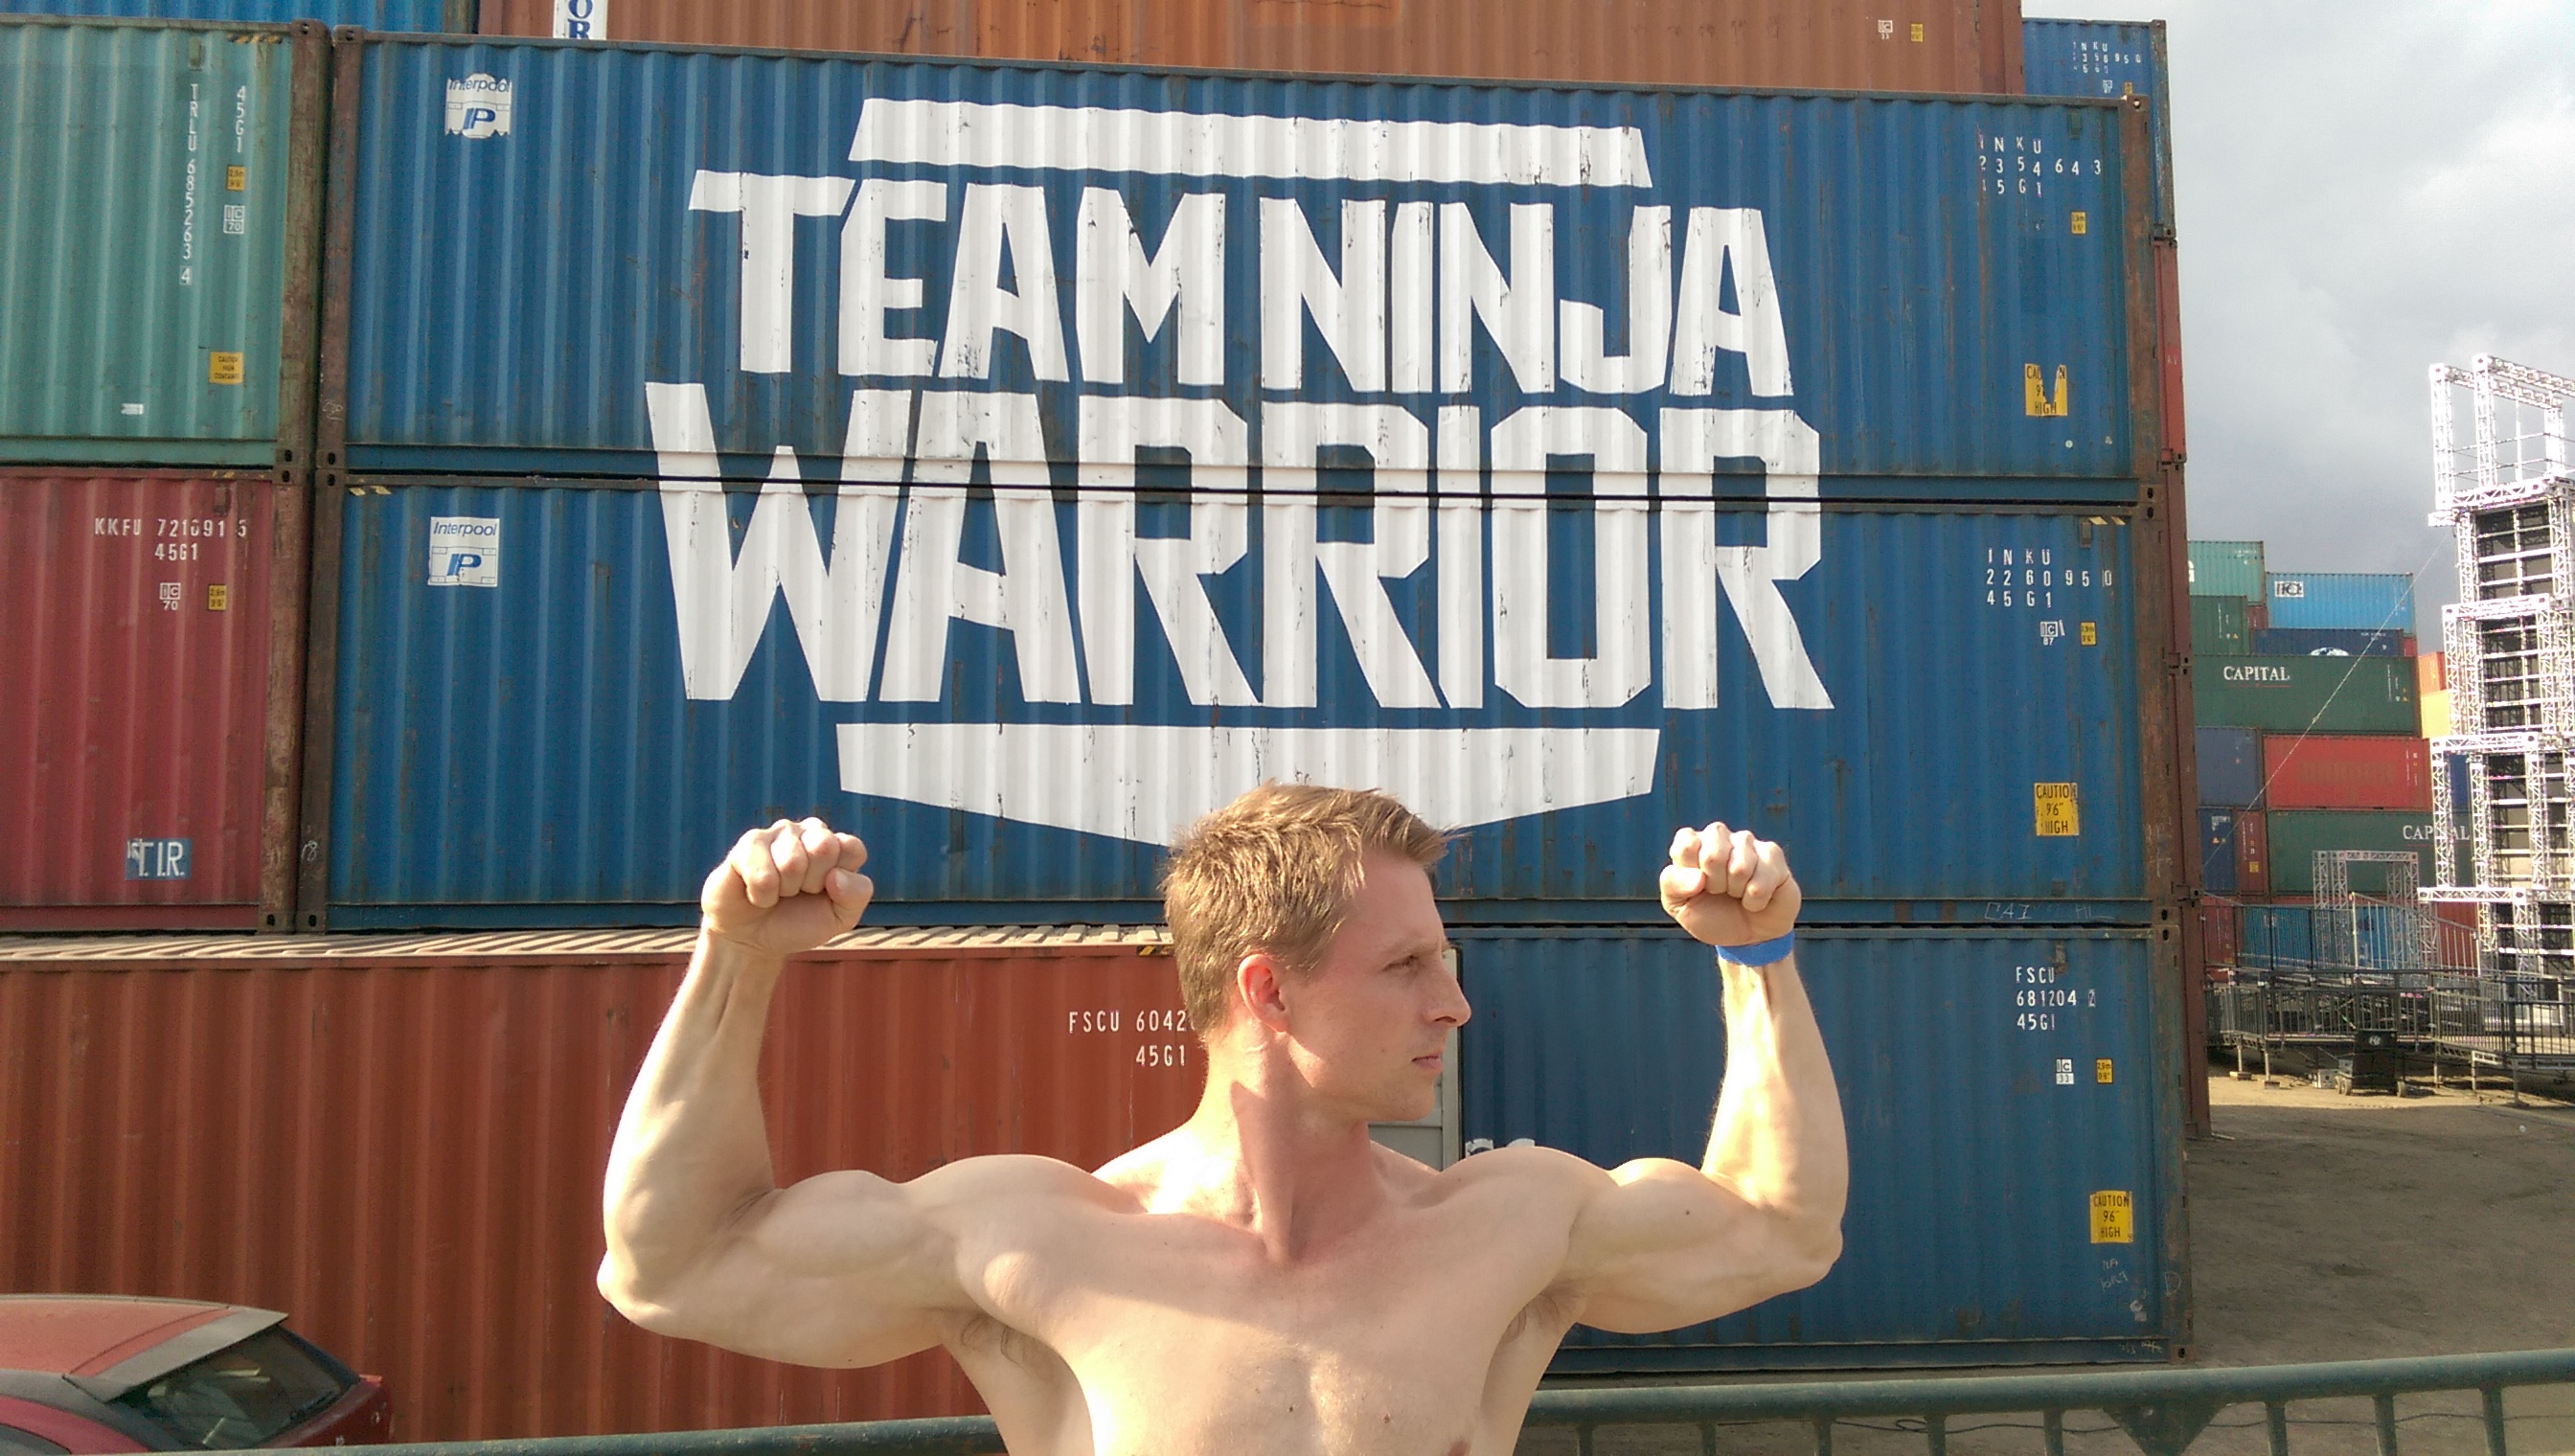 Justin Conway Team Ninja Warrior